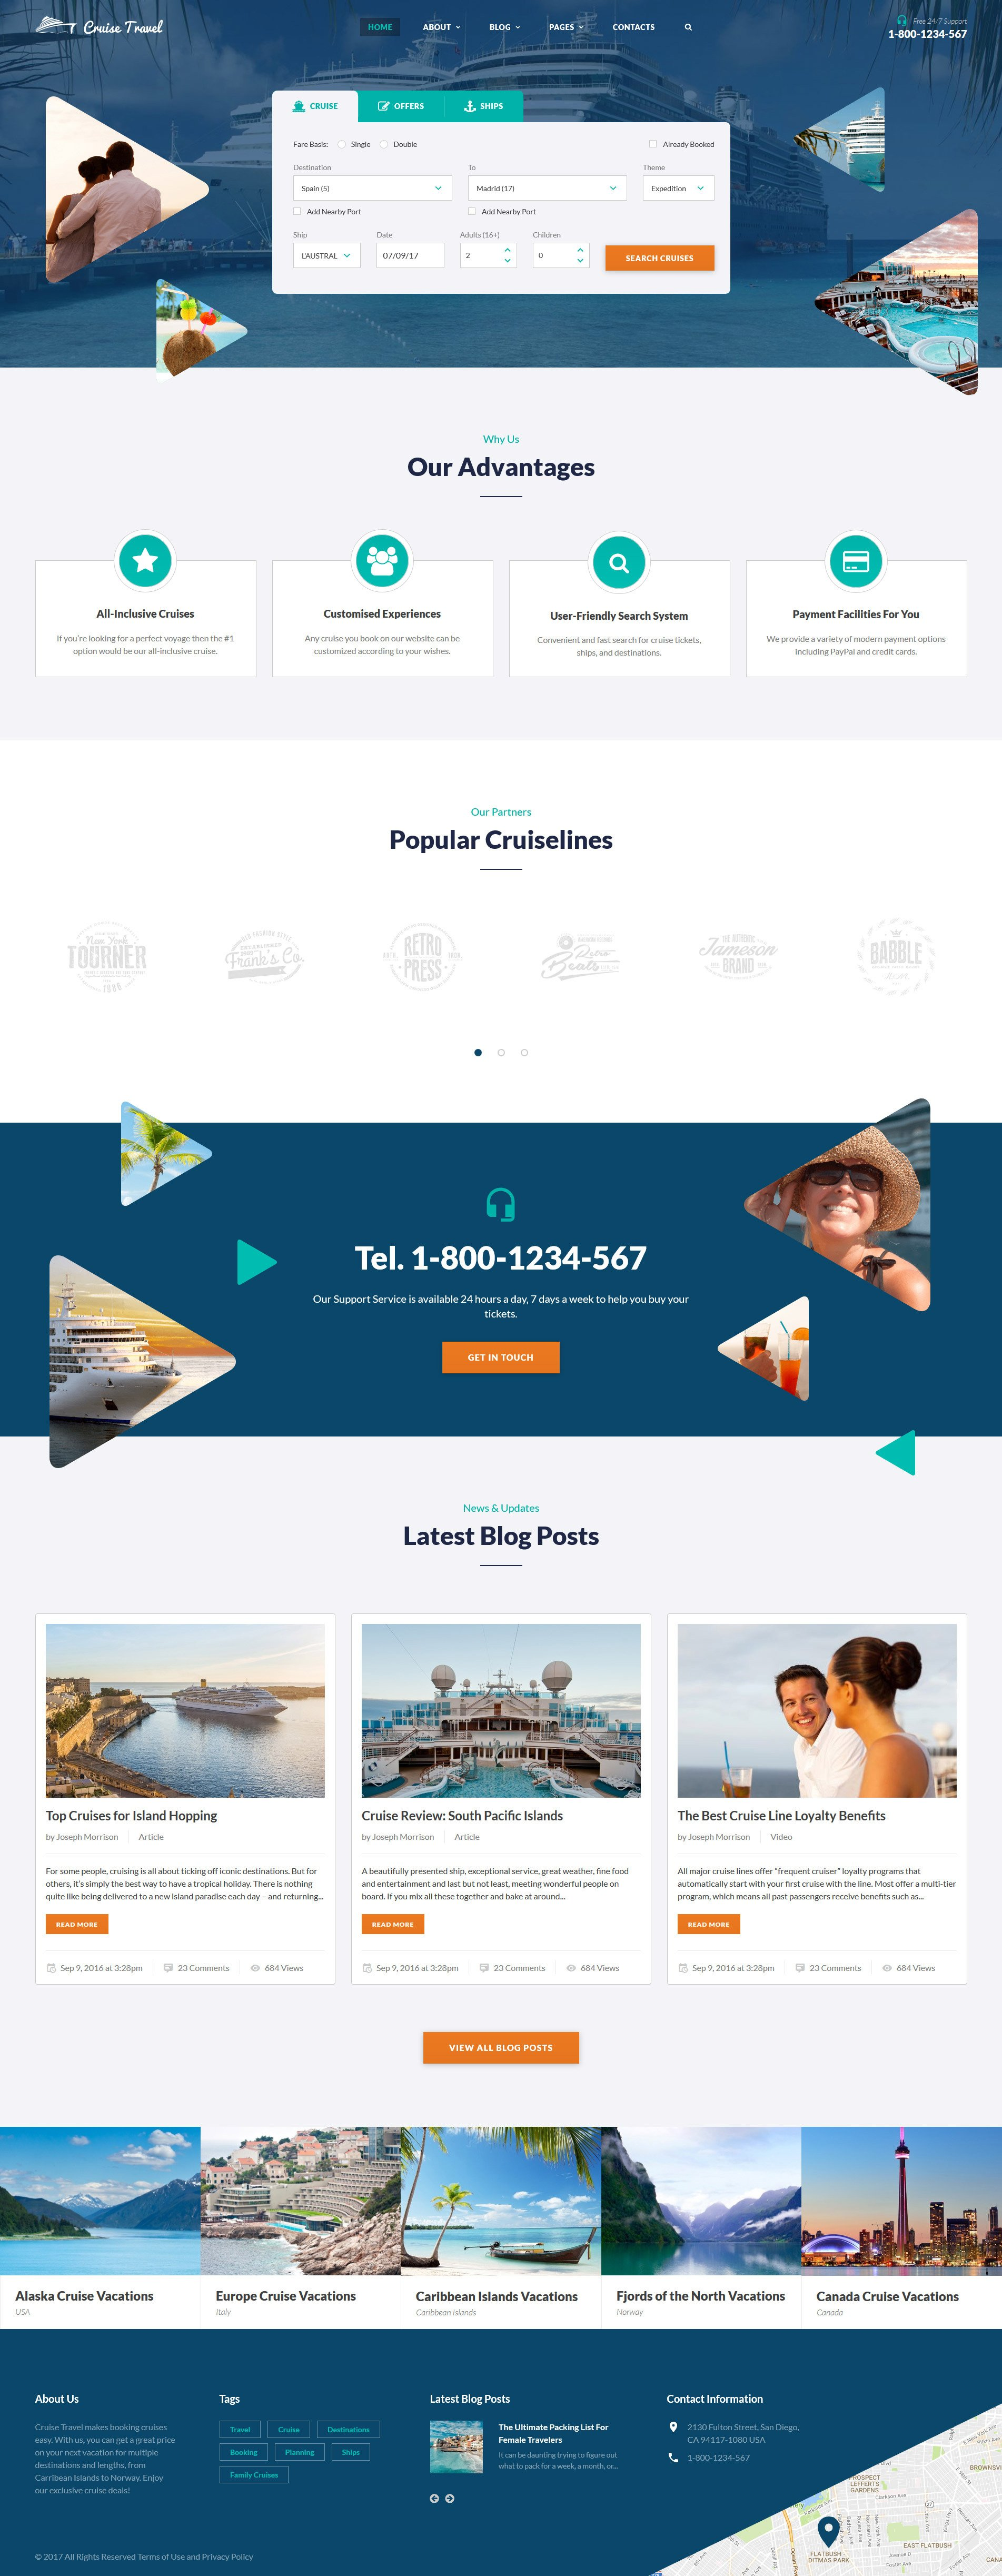 Cruise Travel - Travel Agency Multipage Screenshot